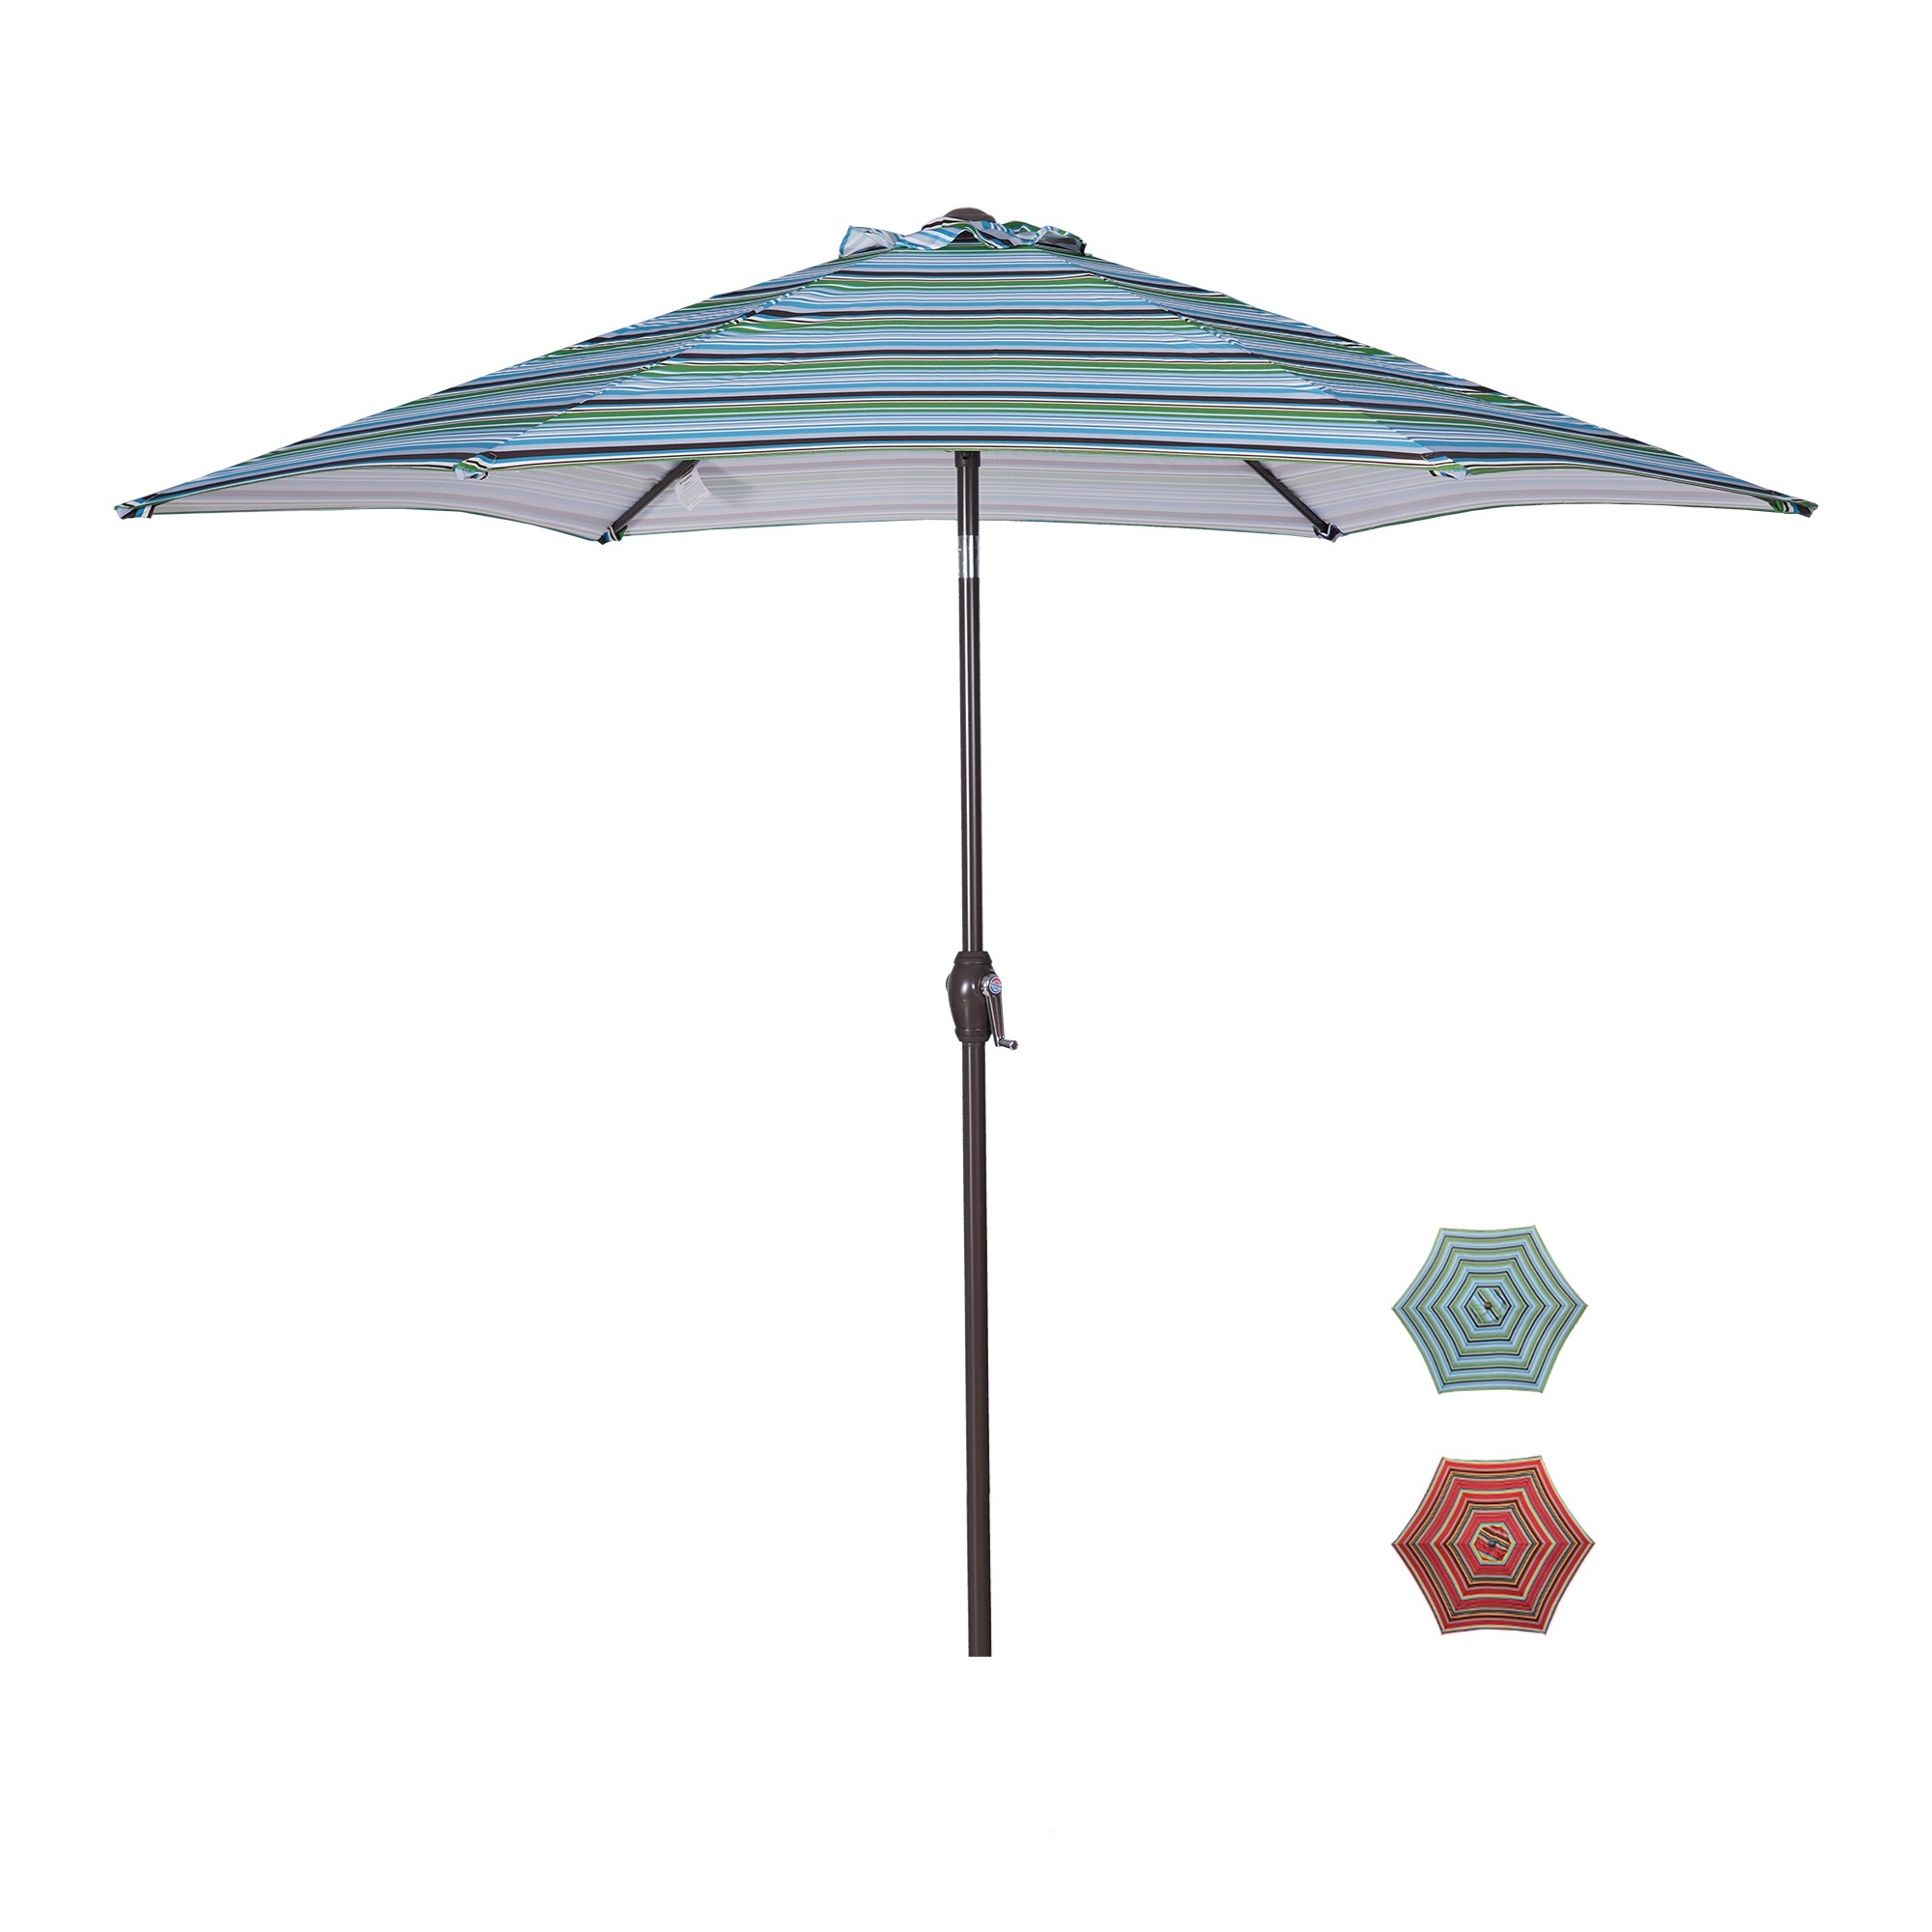 [US Direct] Outdoor Patio 8.6-Feet Market Table Umbrella with Push Button Tilt and Crank, Red Stripes[Umbrella Base is not Included]